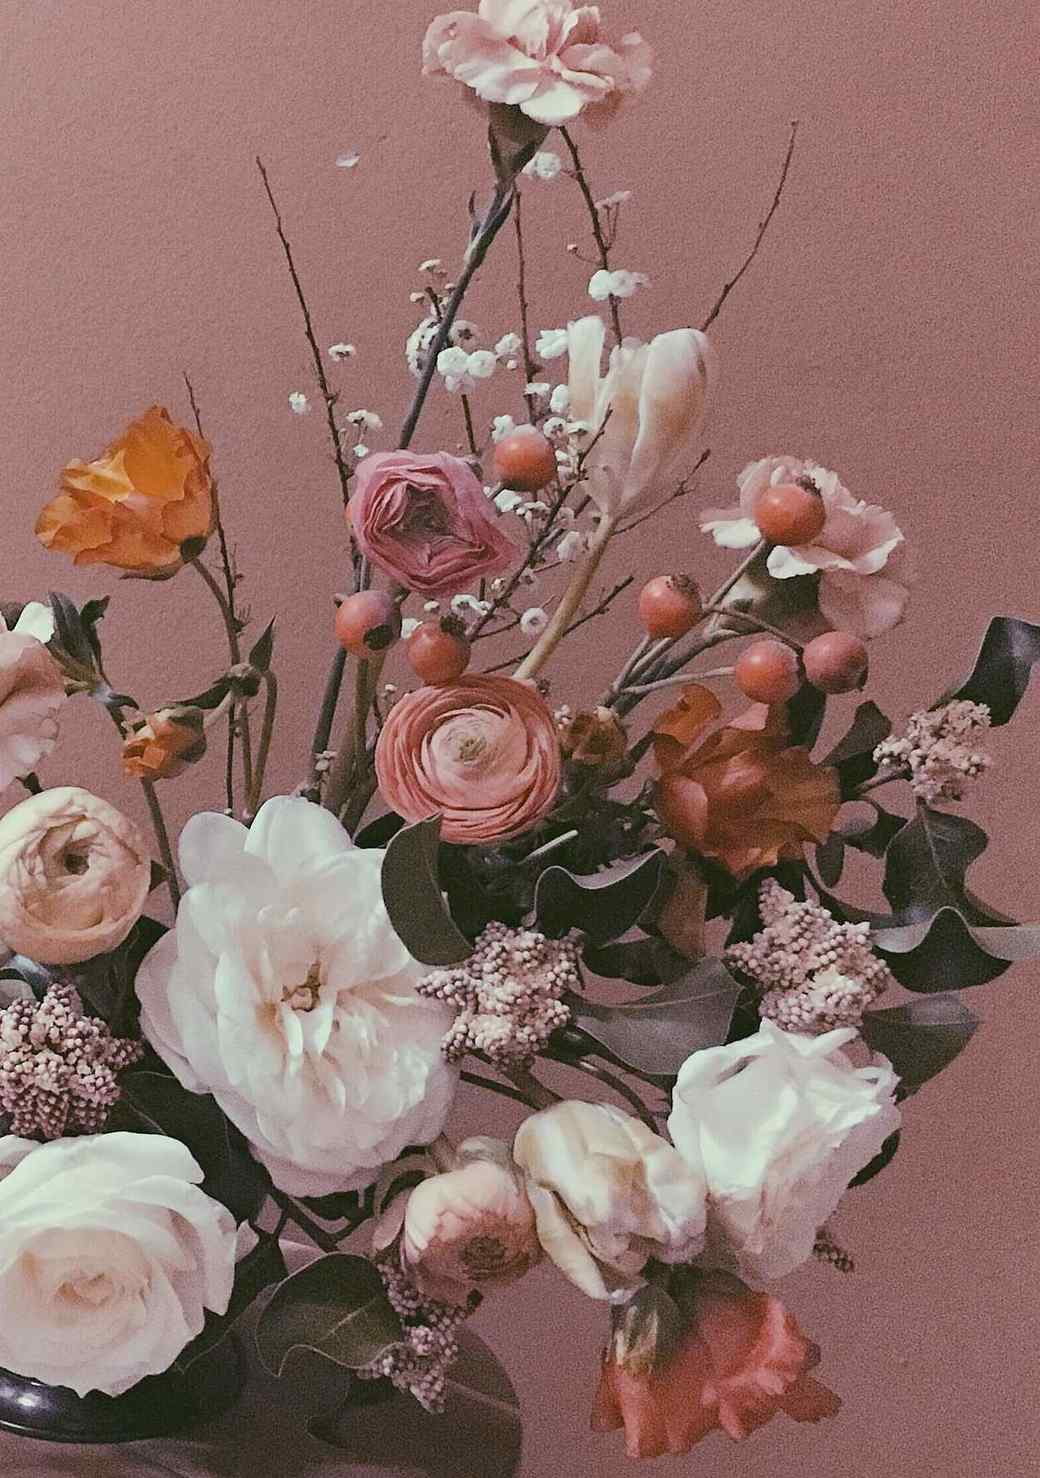 This Pretty-in-Pink Mother's Day Bouquet Will Wow Mom